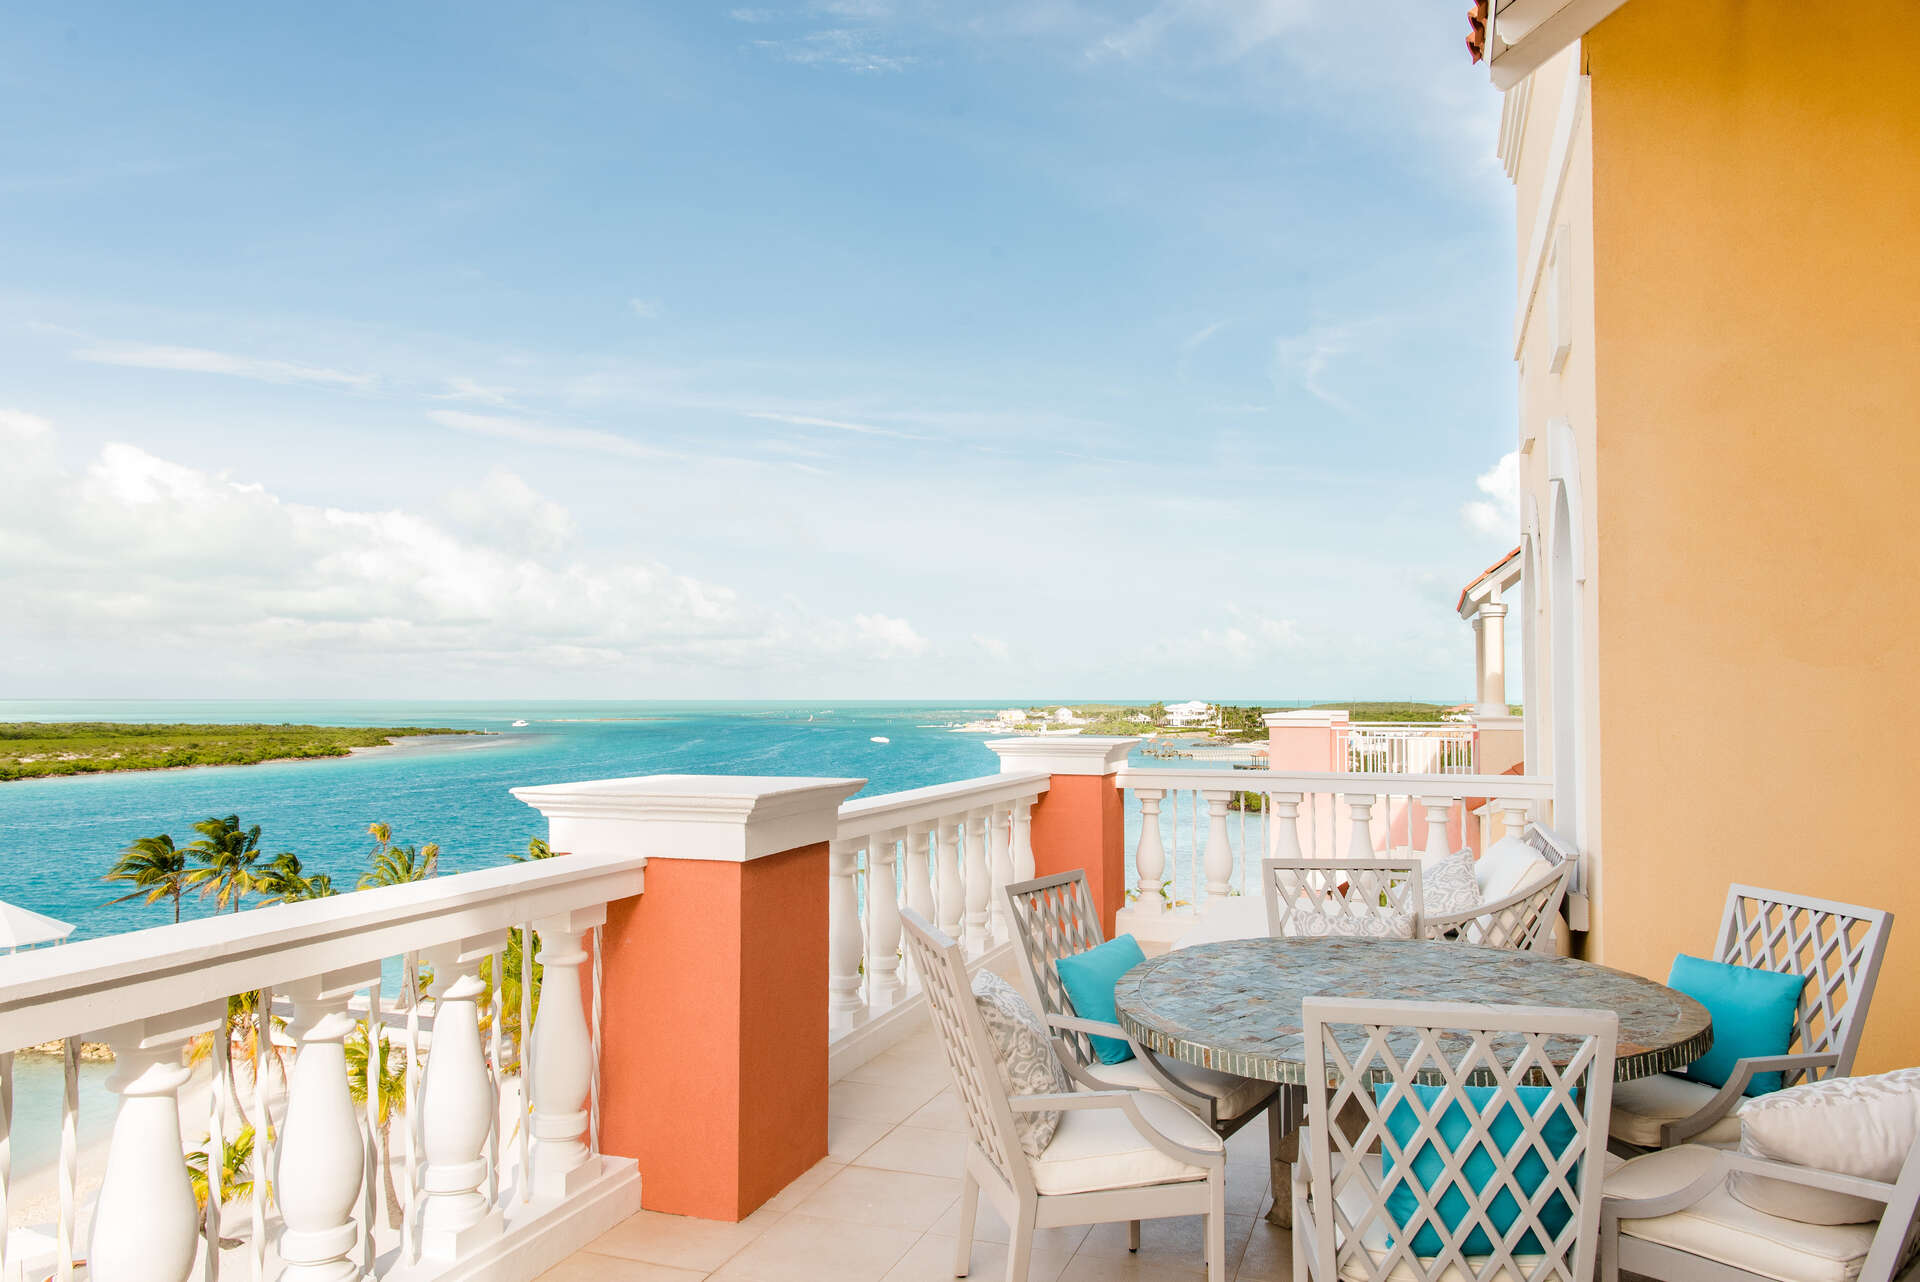 Luxury villa rentals caribbean - Turks and caicos - Providenciales - Blue haven resort - Ocean Front Master Penthouse | 2 Bedrooms - Image 1/10